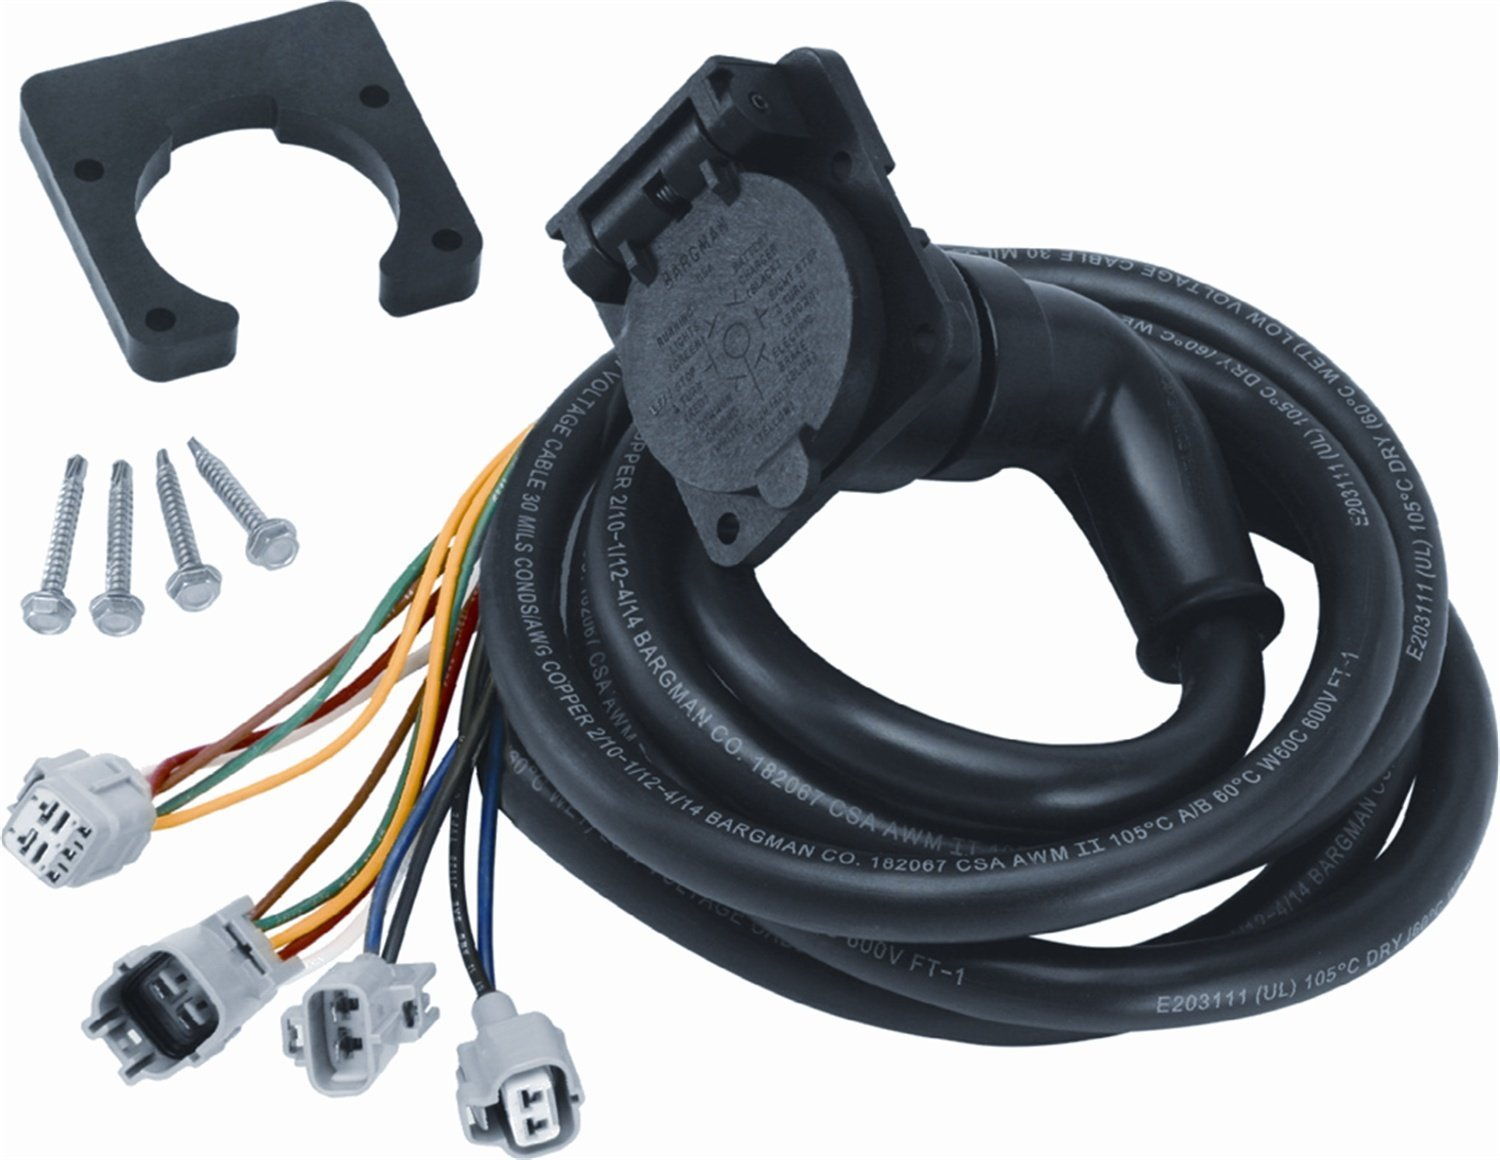 Installing A Fifth Wheel Wiring Harness Electrical Diagrams 90 Degree Adapter 7 Way Flat Pin Connector Oem Connectors